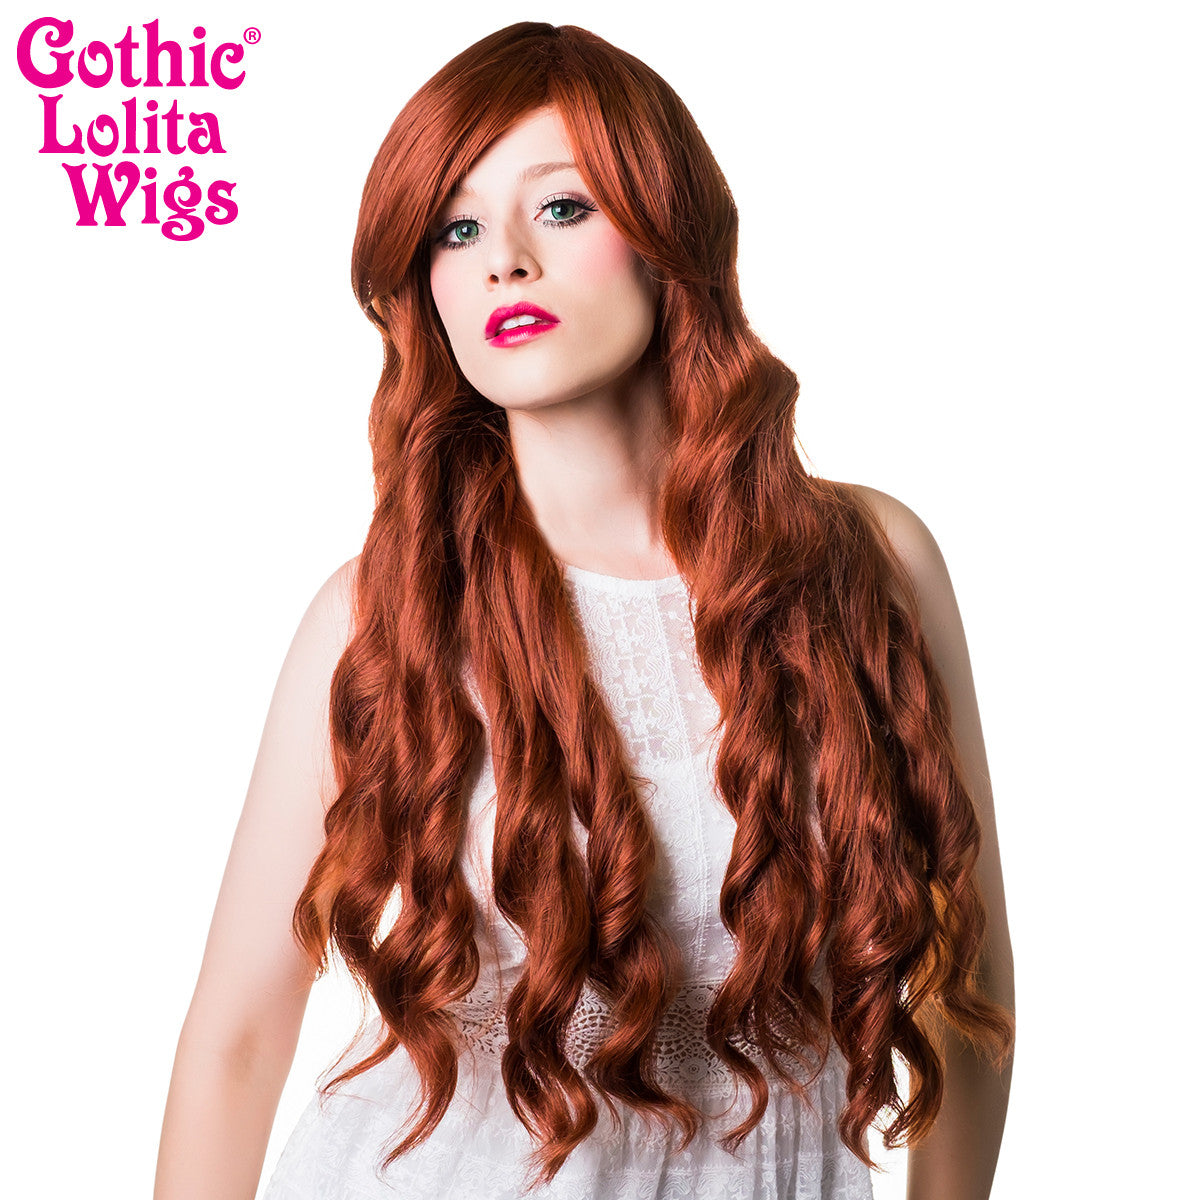 Gothic Lolita Wigs® <br> Classic Wavy Lolita™ Collection - Auburn Mix -00035